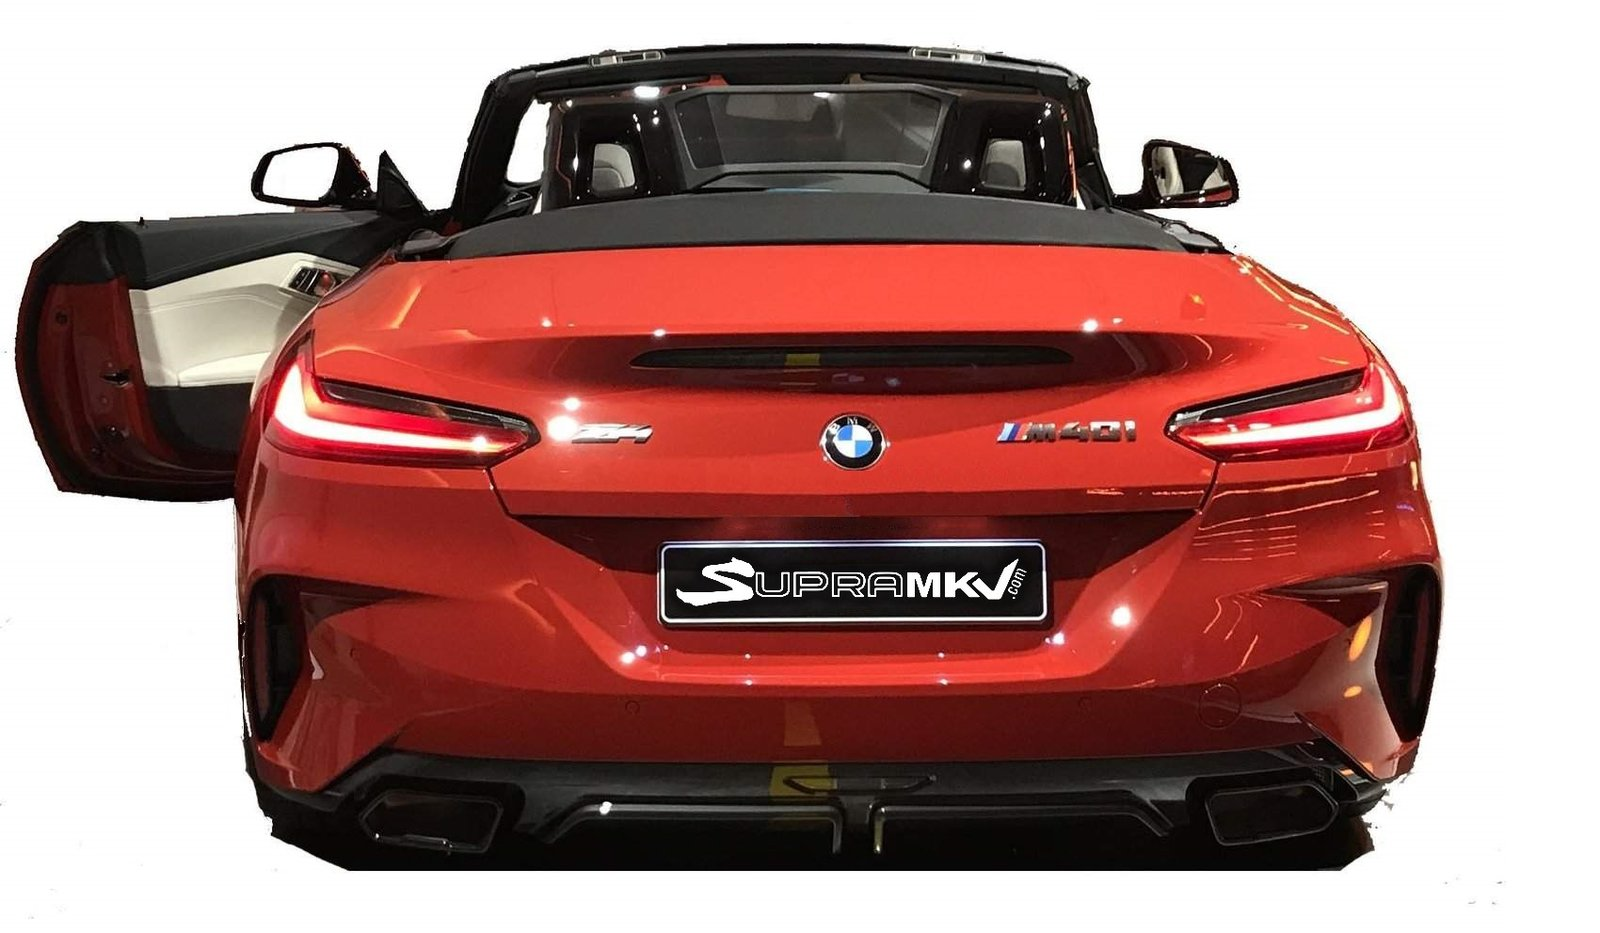 Bmw Z4 2019 Photos Have Been Leaked Online Newsarticlesmotorists